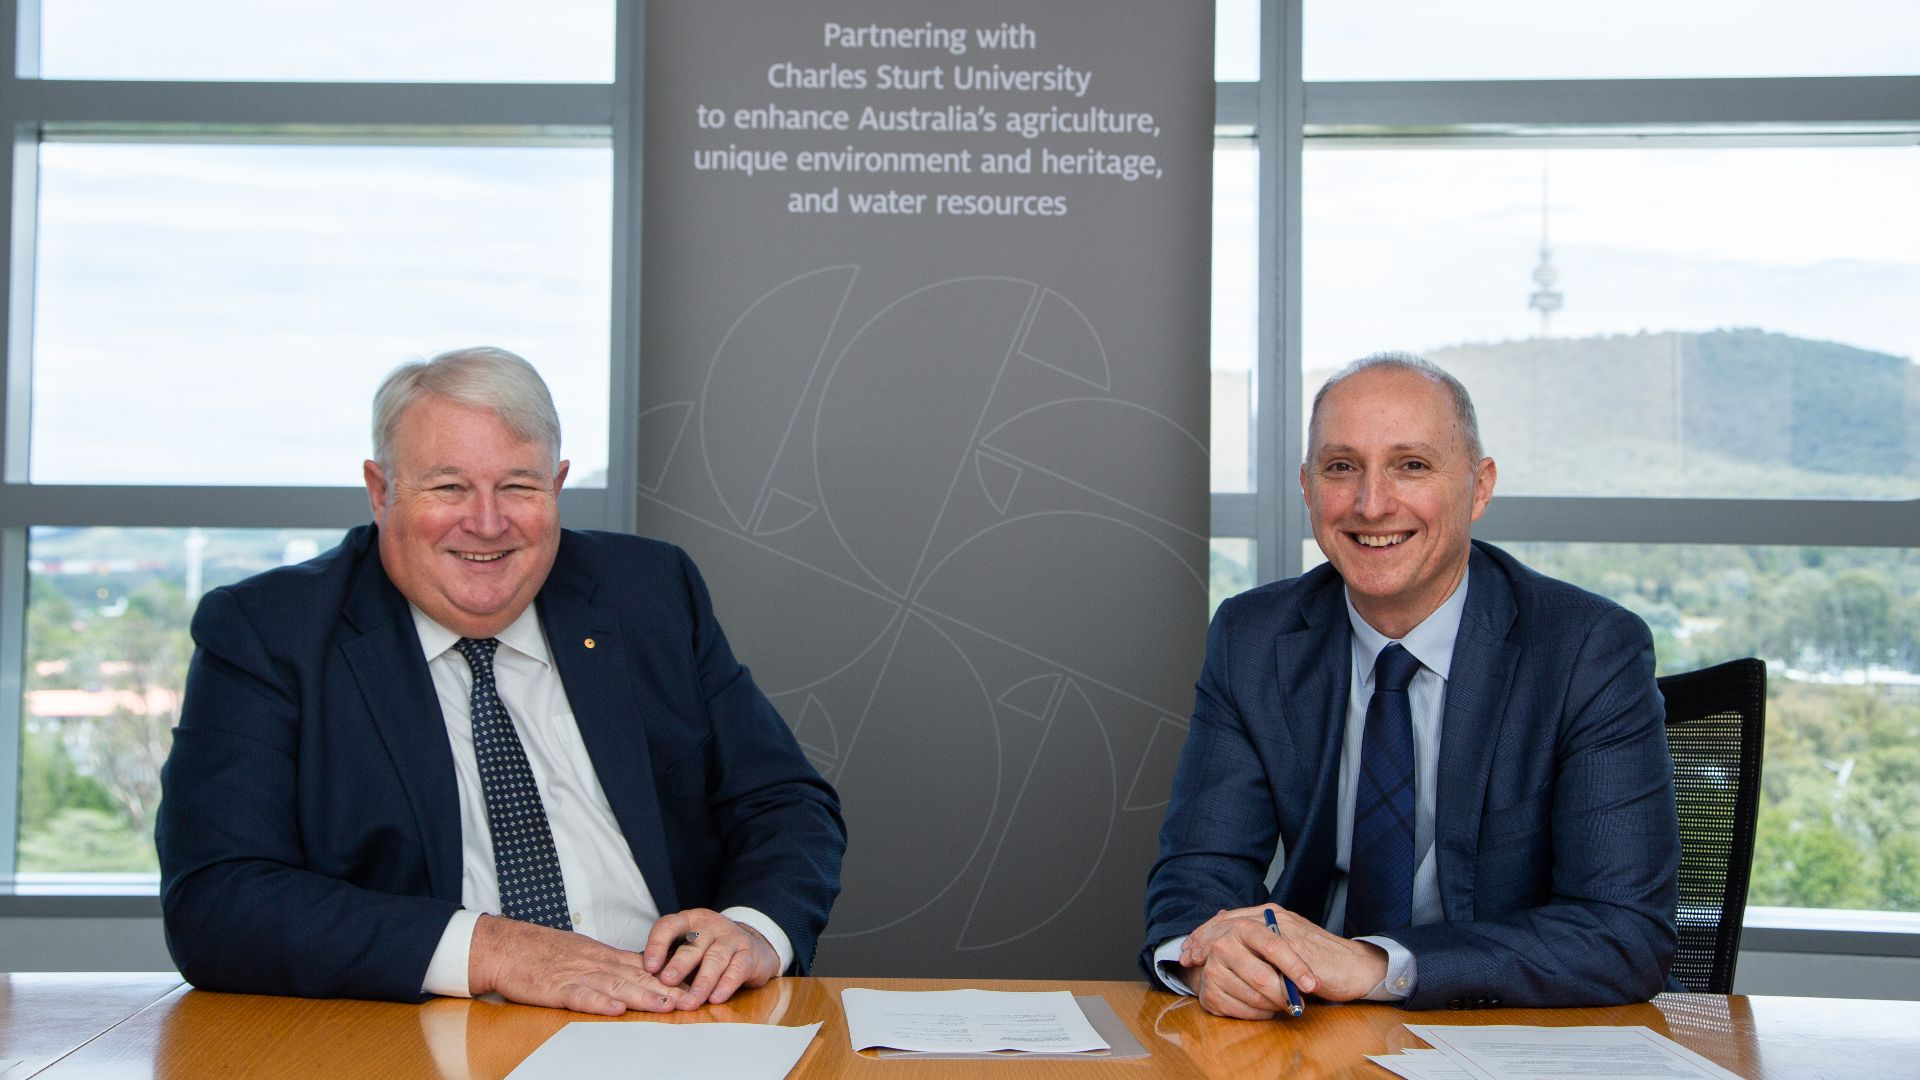 Agreement with Australian Government to enhance agriculture, water and environment